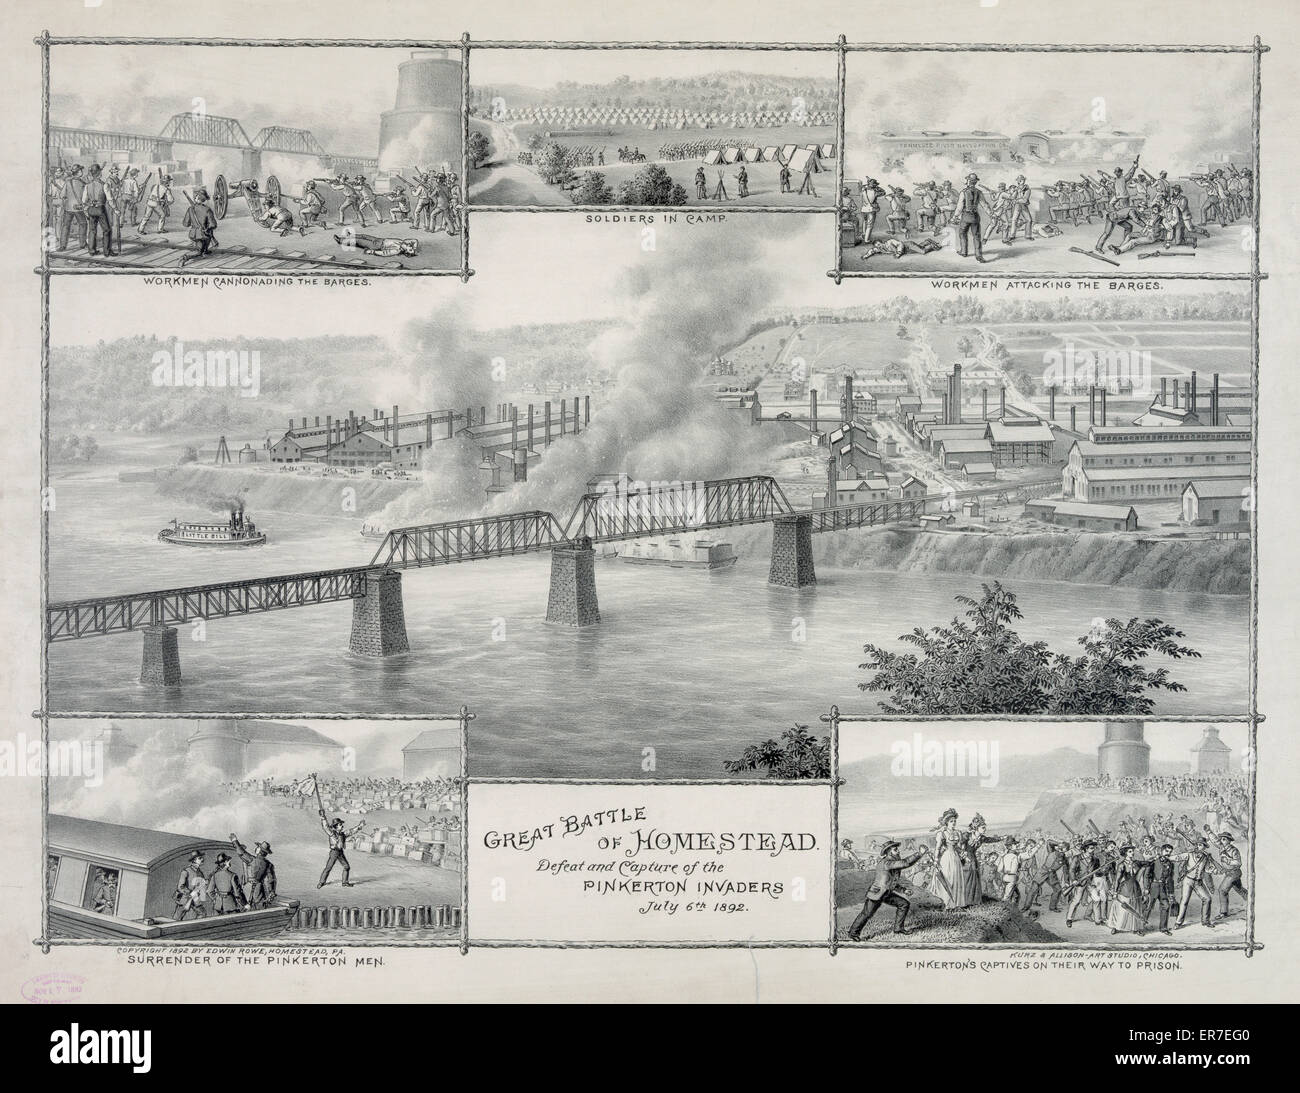 Great Battle of Homestead. Date c1892. - Stock Image